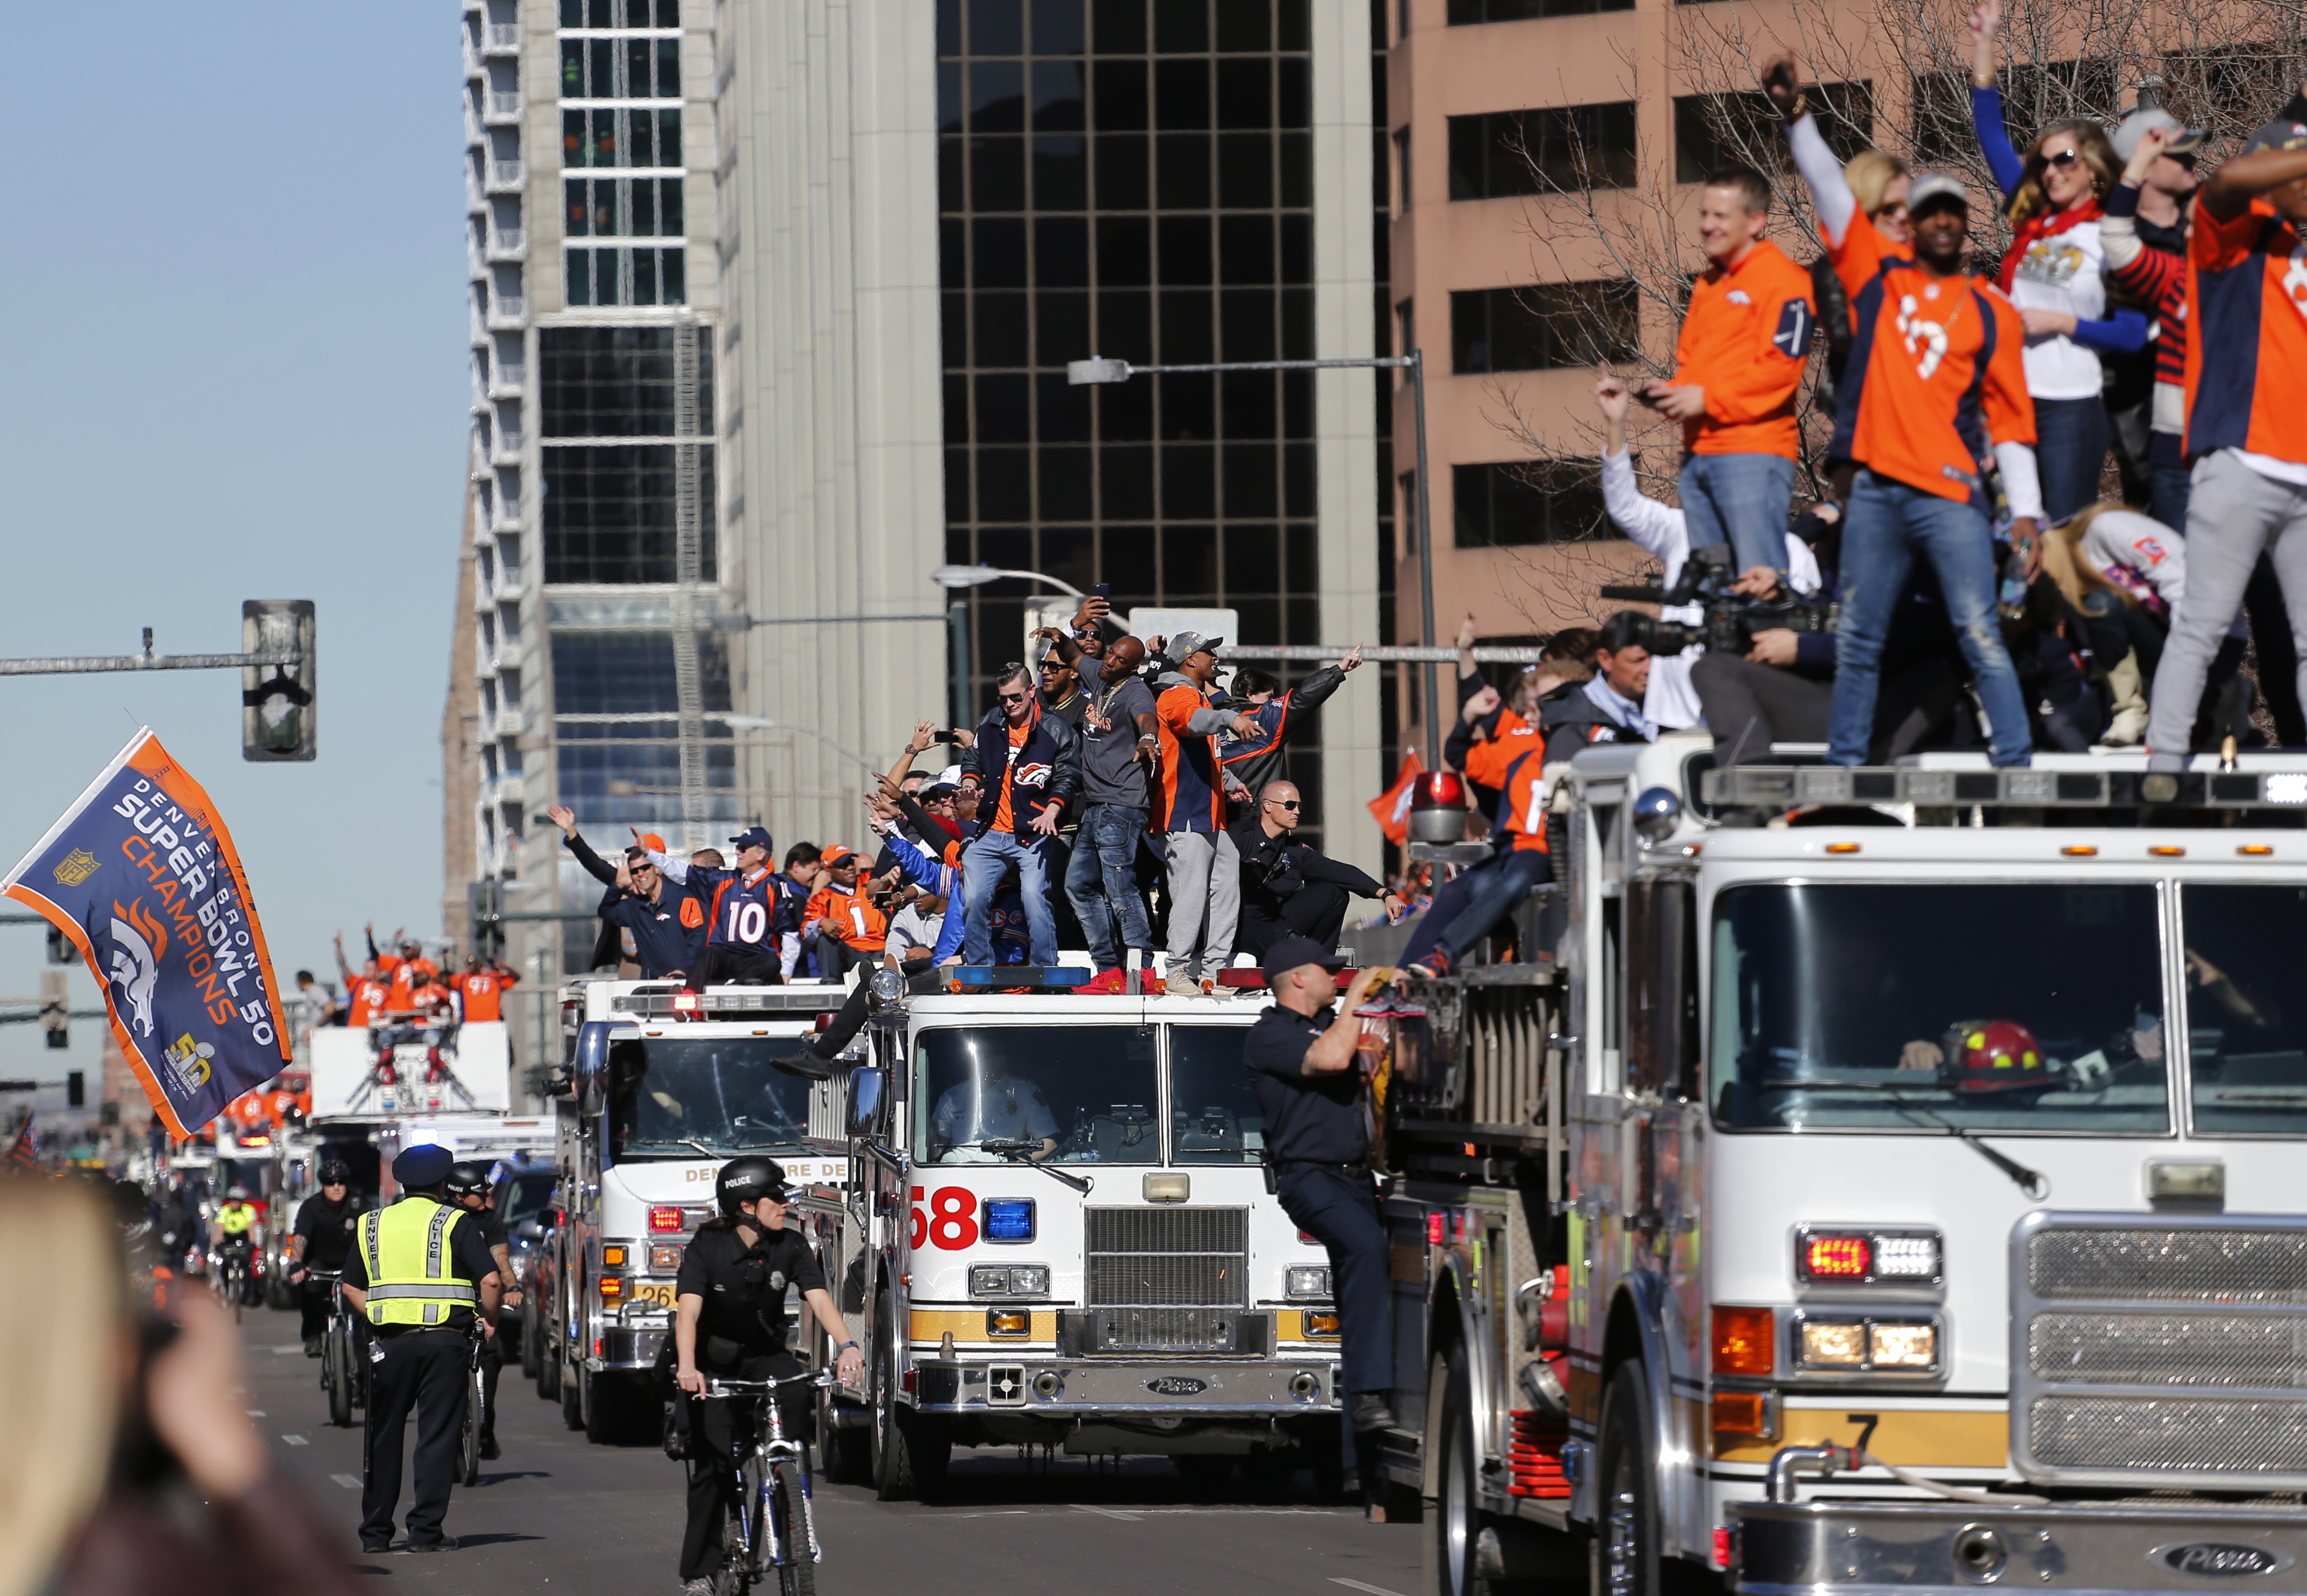 Photo: Broncos parade 11 | Team on fire engines